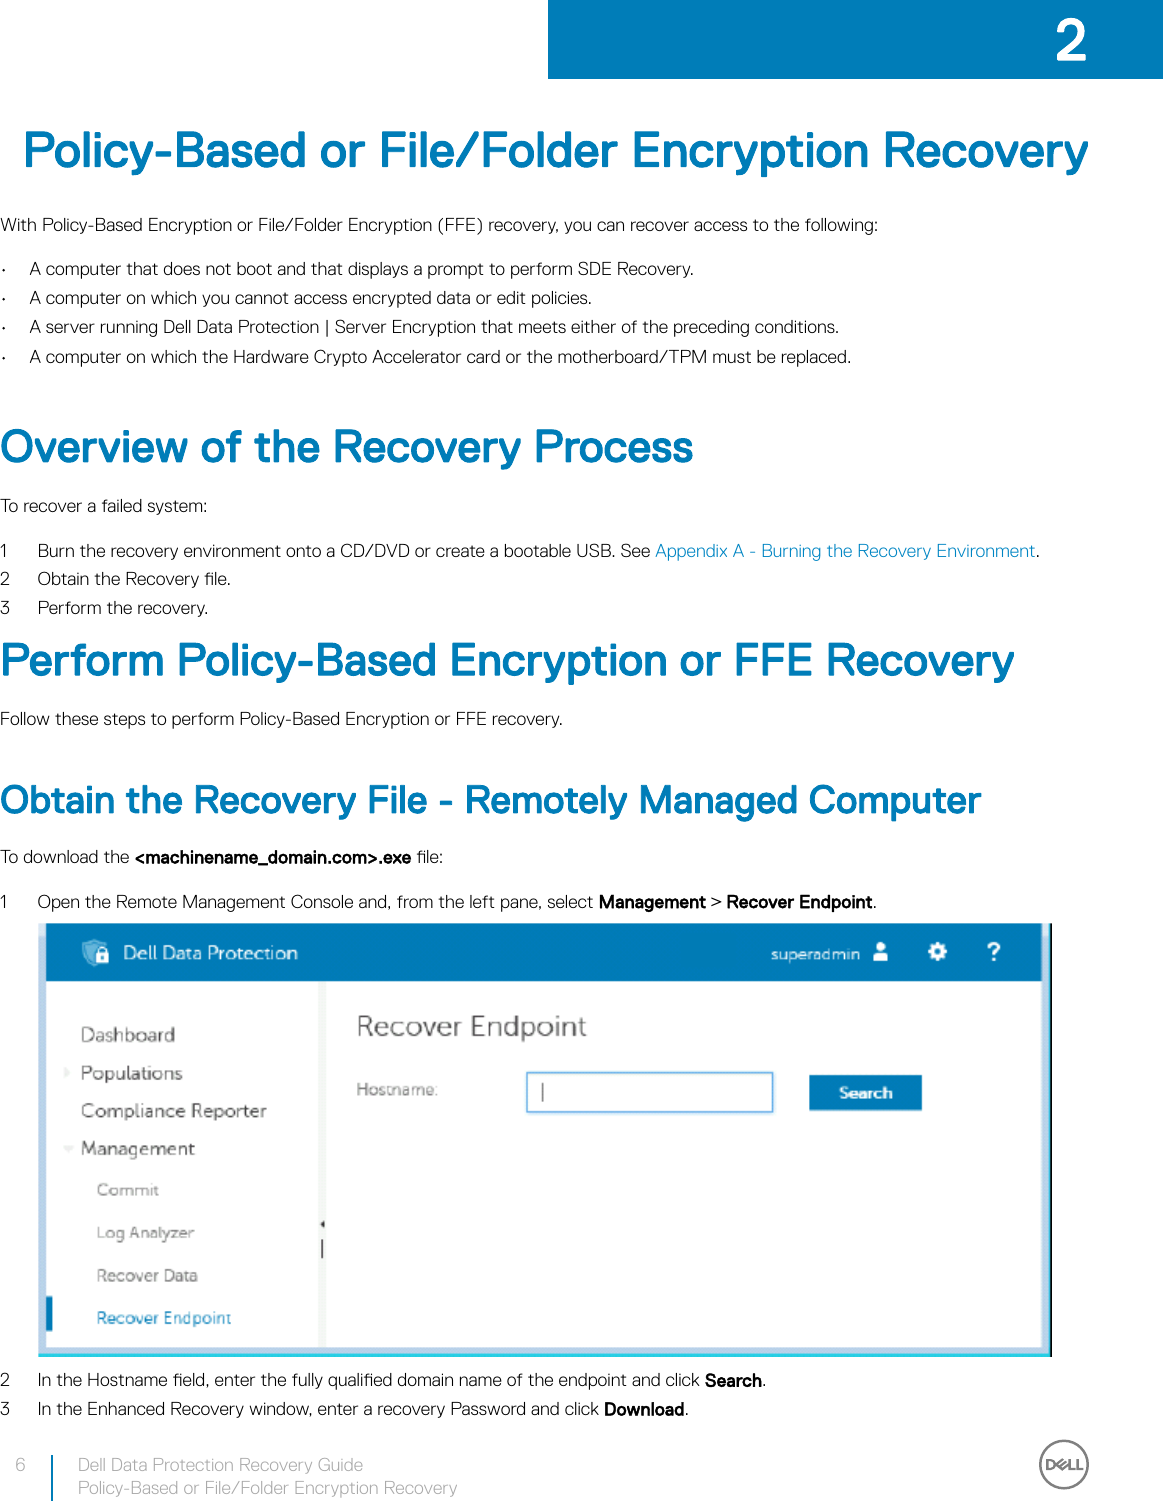 Dell data protection security tools Recovery Guide User Manual